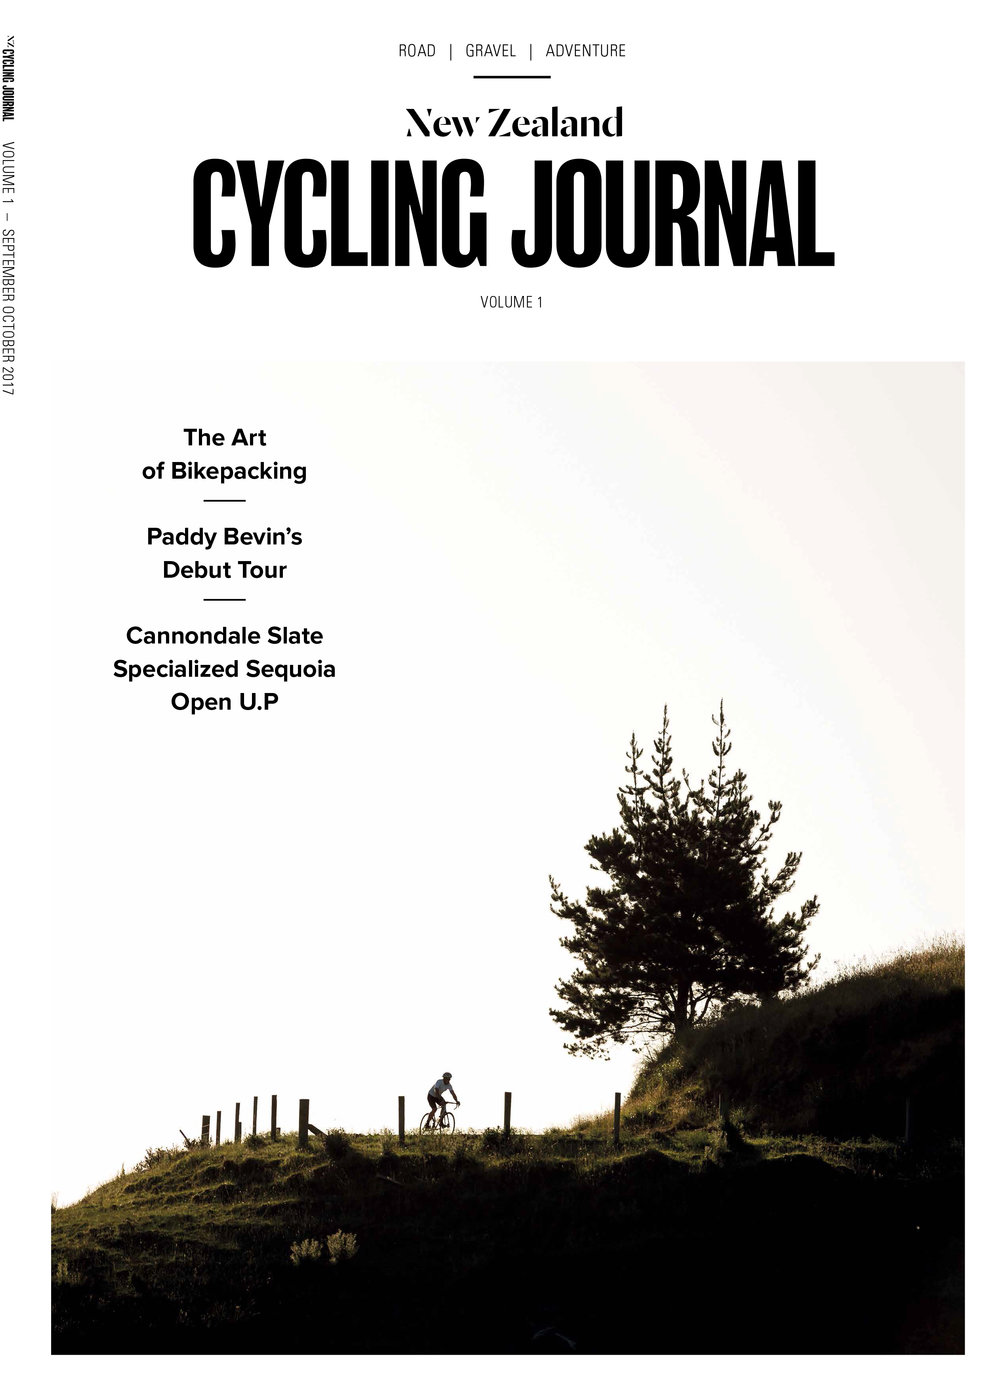 NZ Cycling Journal - Vol.1 Cover.jpg